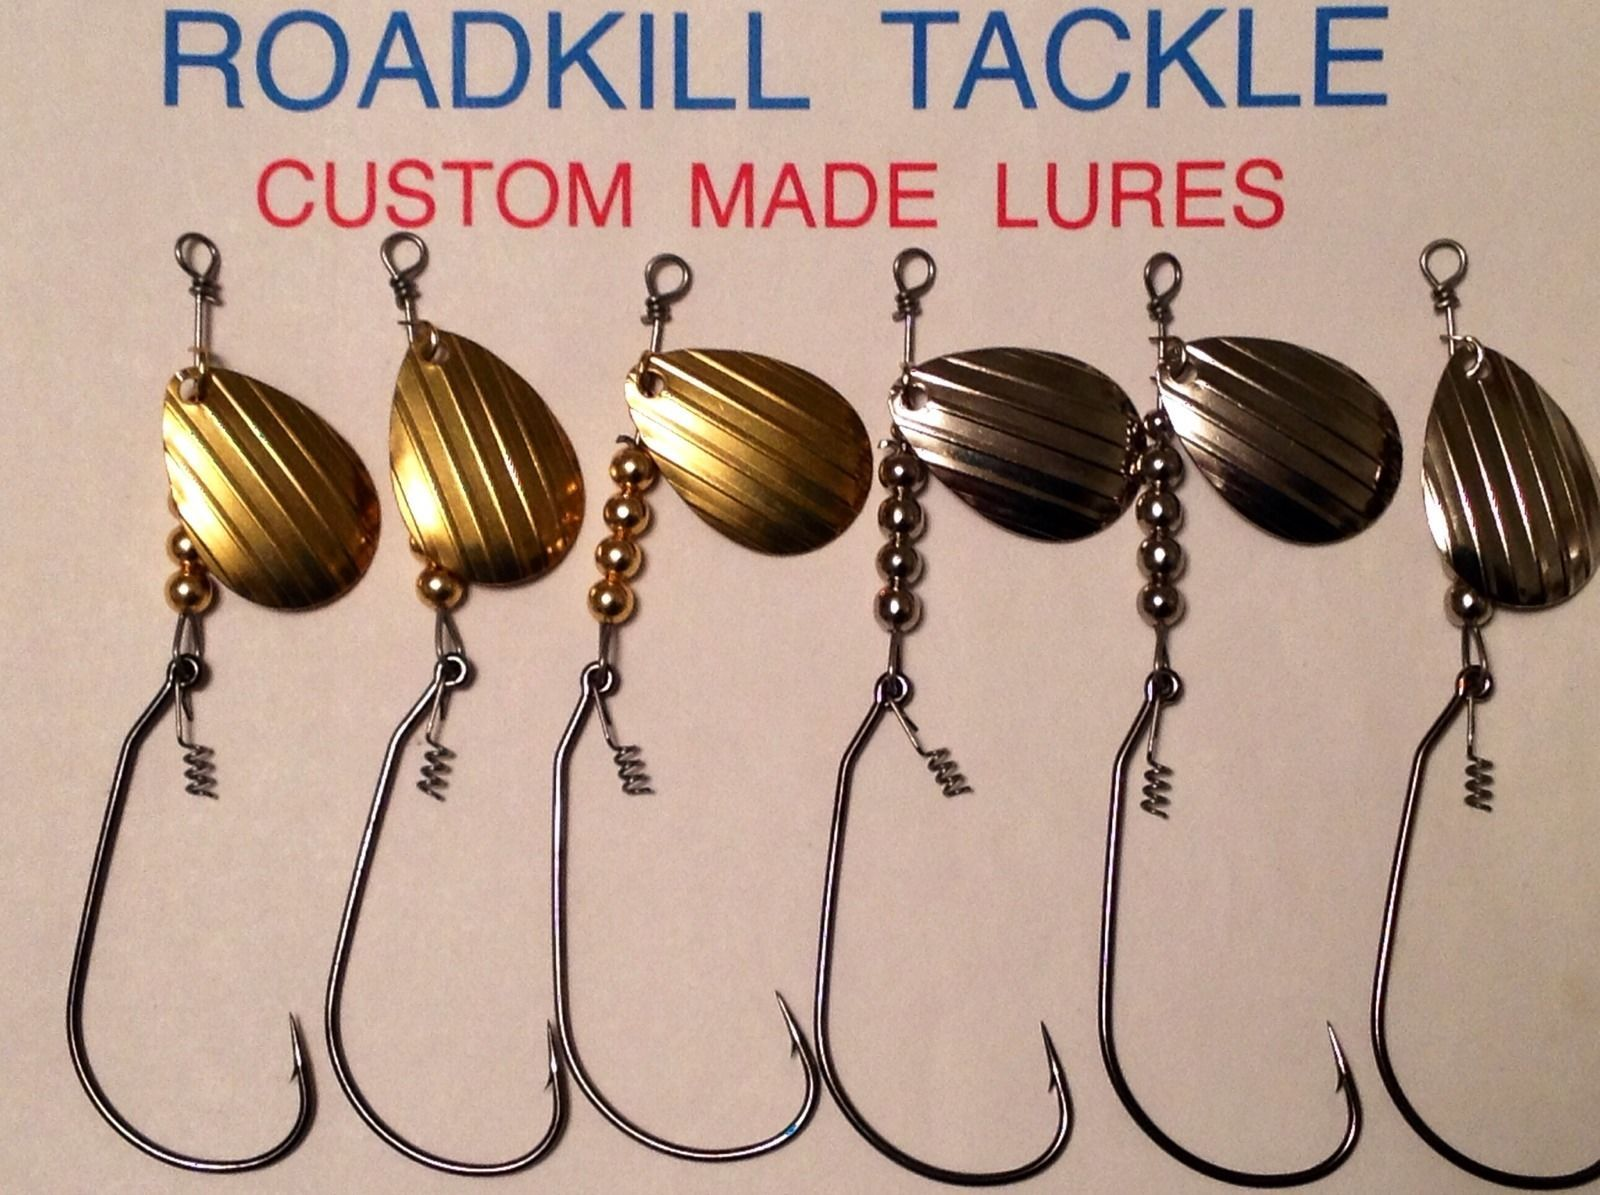 unweighted in line spinner bait lure bass pike redfish striper, Reel Combo